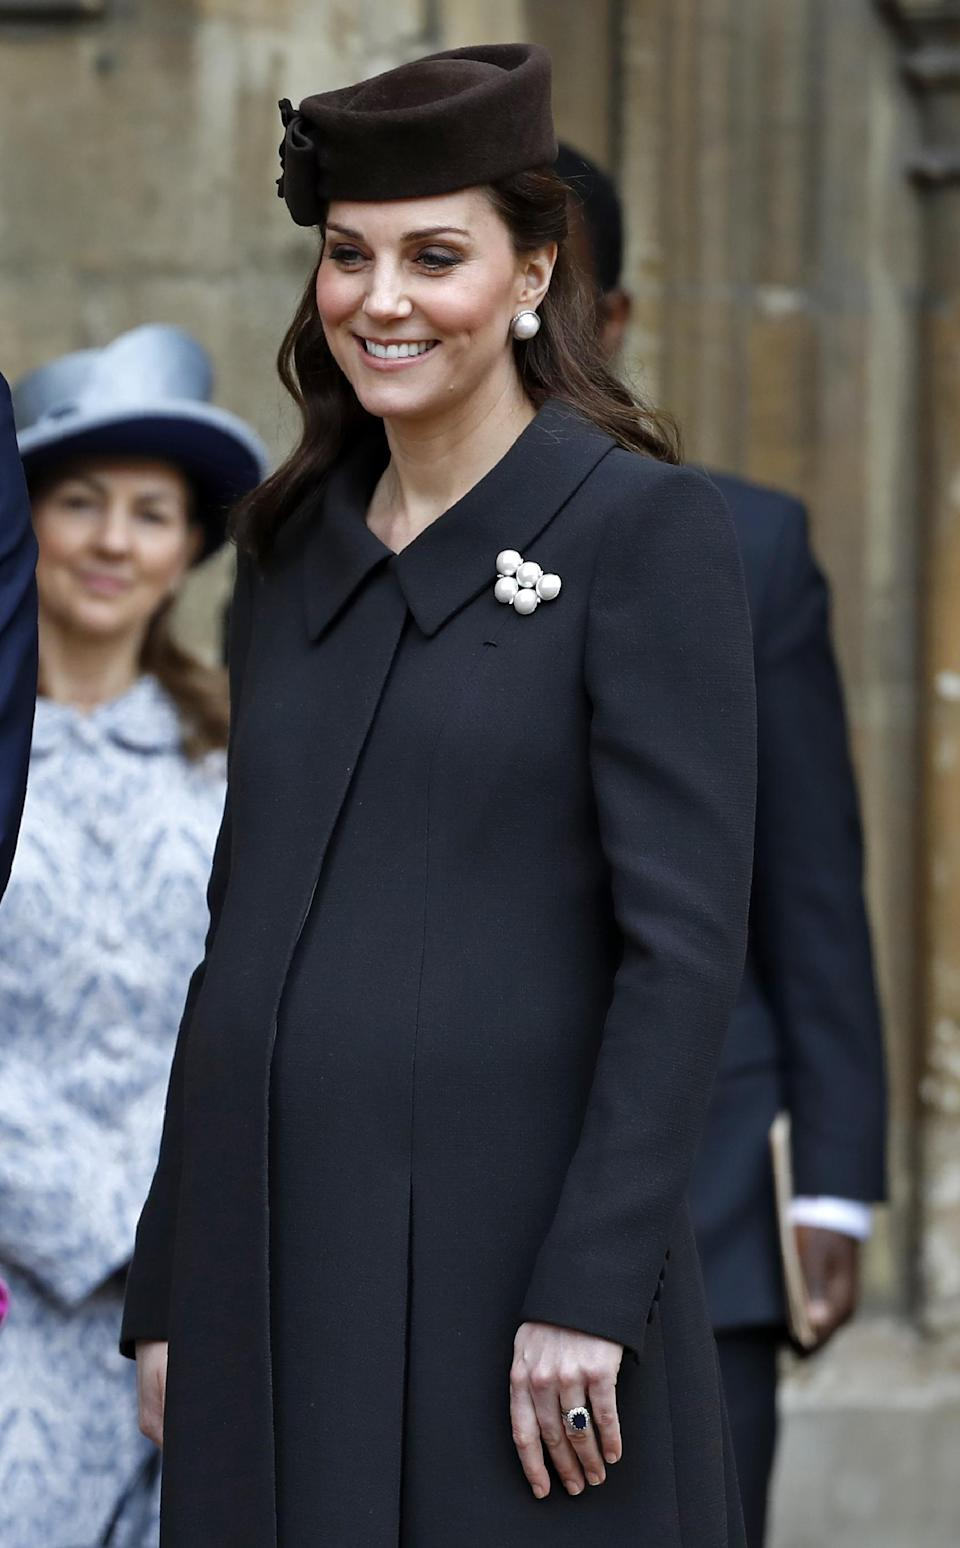 <p><strong>The occassion:</strong> The Easter Sunday church service at St George's Chapel, Windsor Castle.<br><strong>The look: </strong>A black coat with a brown hat and pearl-adorned brooch. <br>[Photo: Getty] </p>